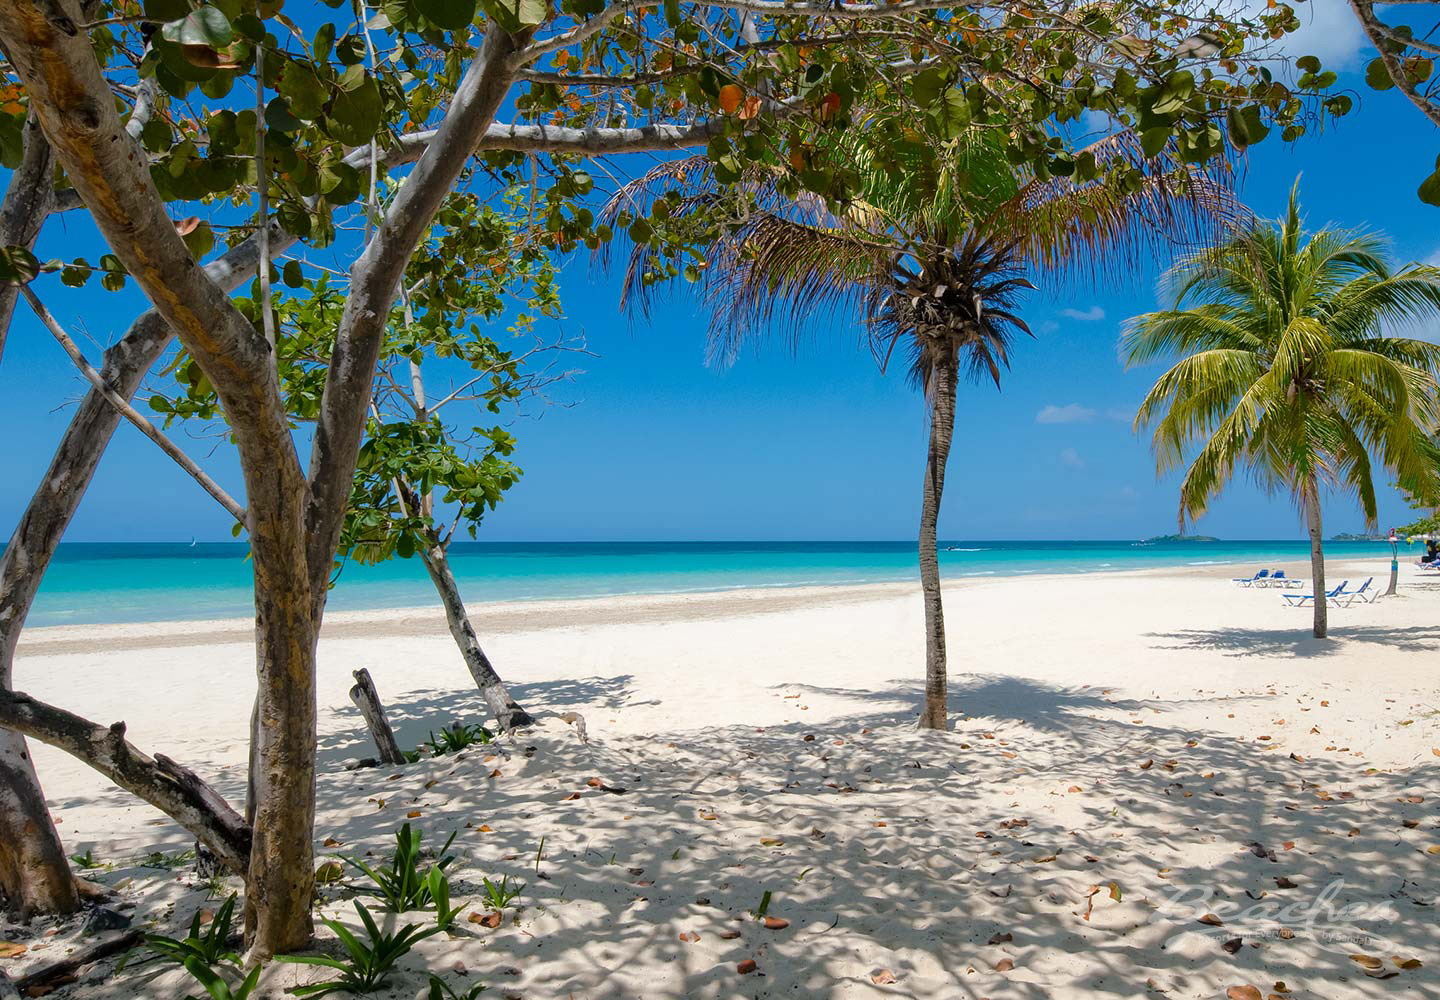 Travel Agency All-Inclusive Resort Beaches Negril 014